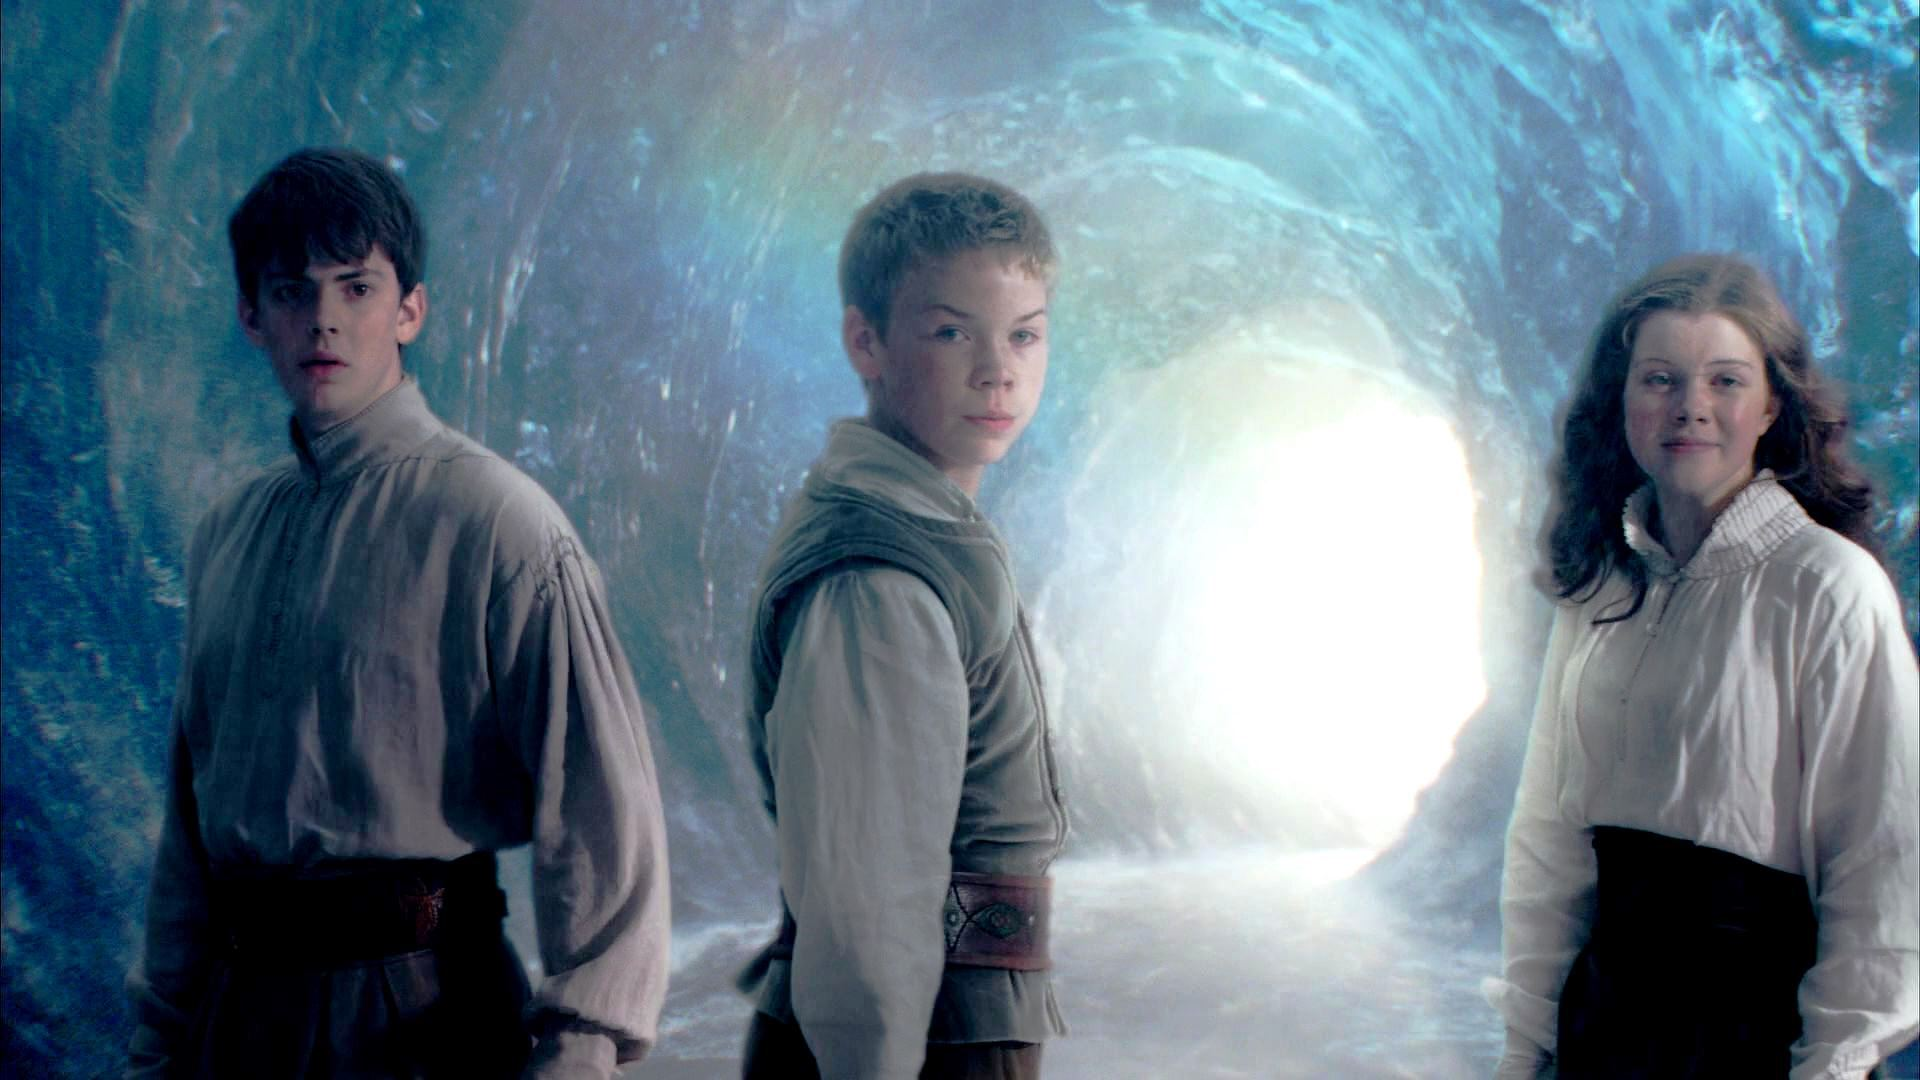 Return to Narnia - (l to r) Edmund (Skandar Keynes), Eustace (Will Poulter) and Lucy (Georgie Henley) in The Chronicles of Narnia: The Voyage of the Dawn Treader (2010)